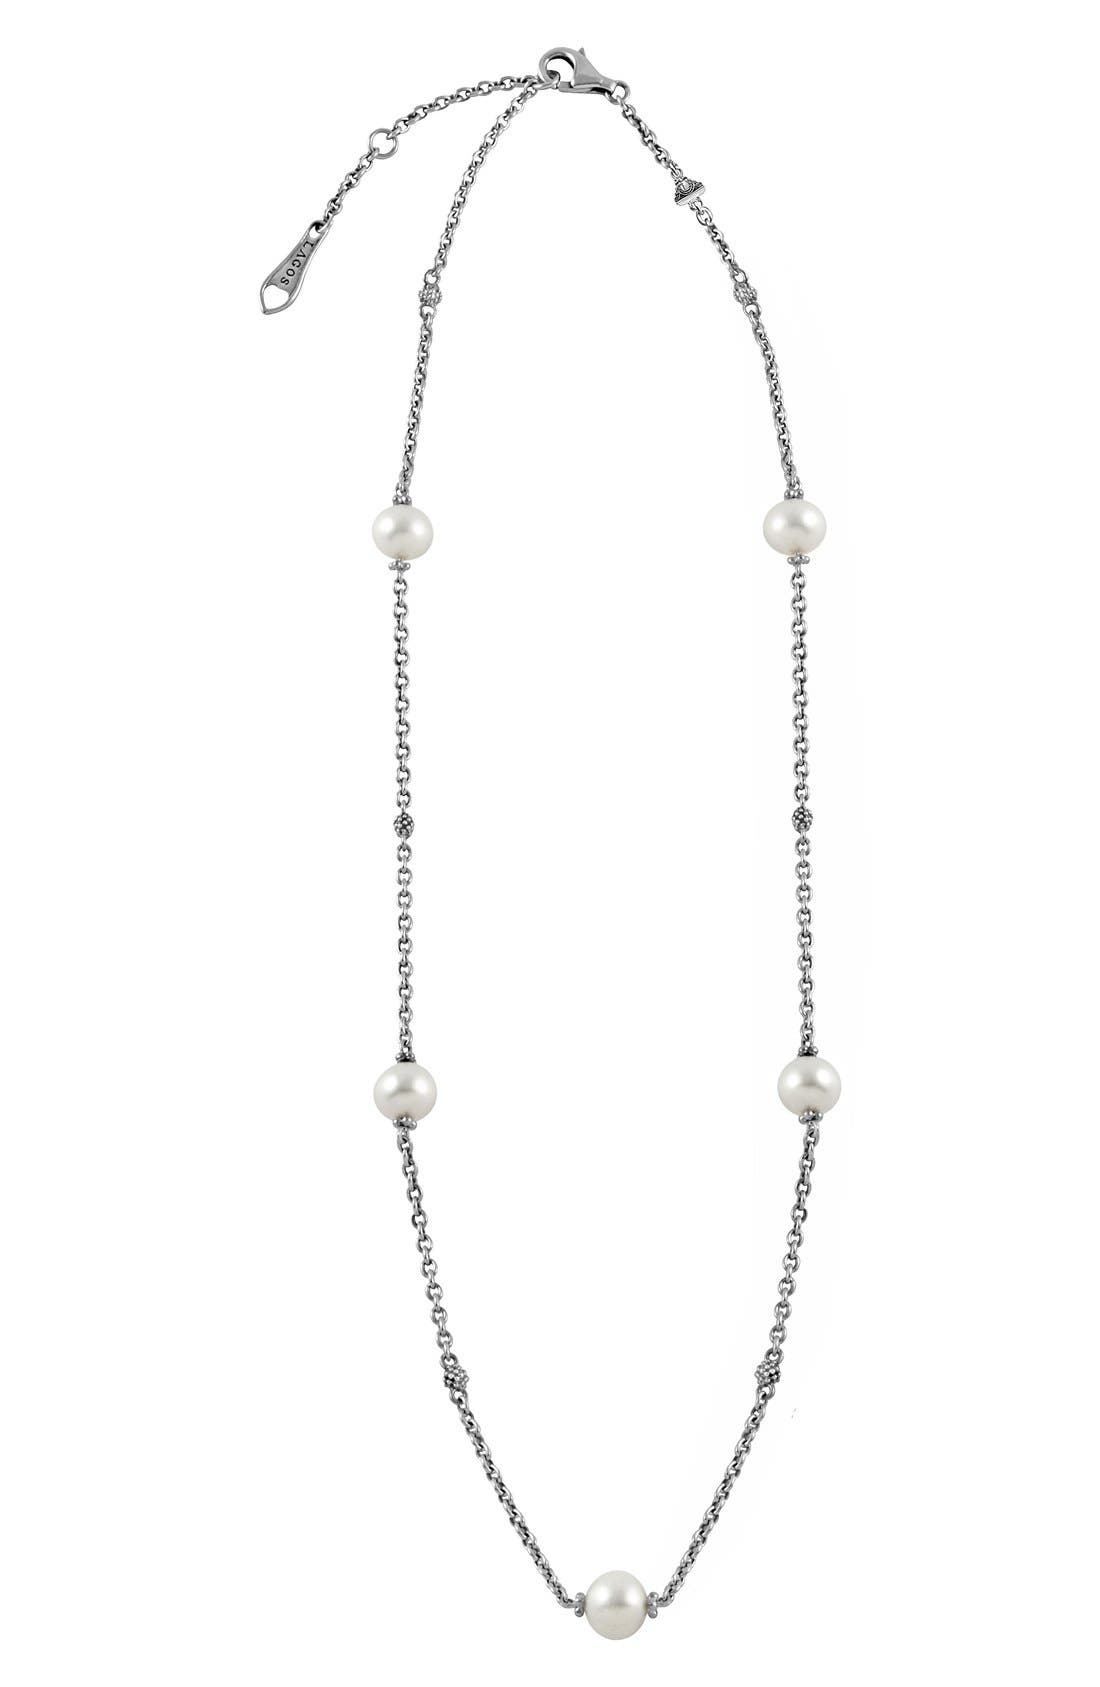 'Luna' Pearl Station Necklace,                             Main thumbnail 1, color,                             Silver/ Pearl